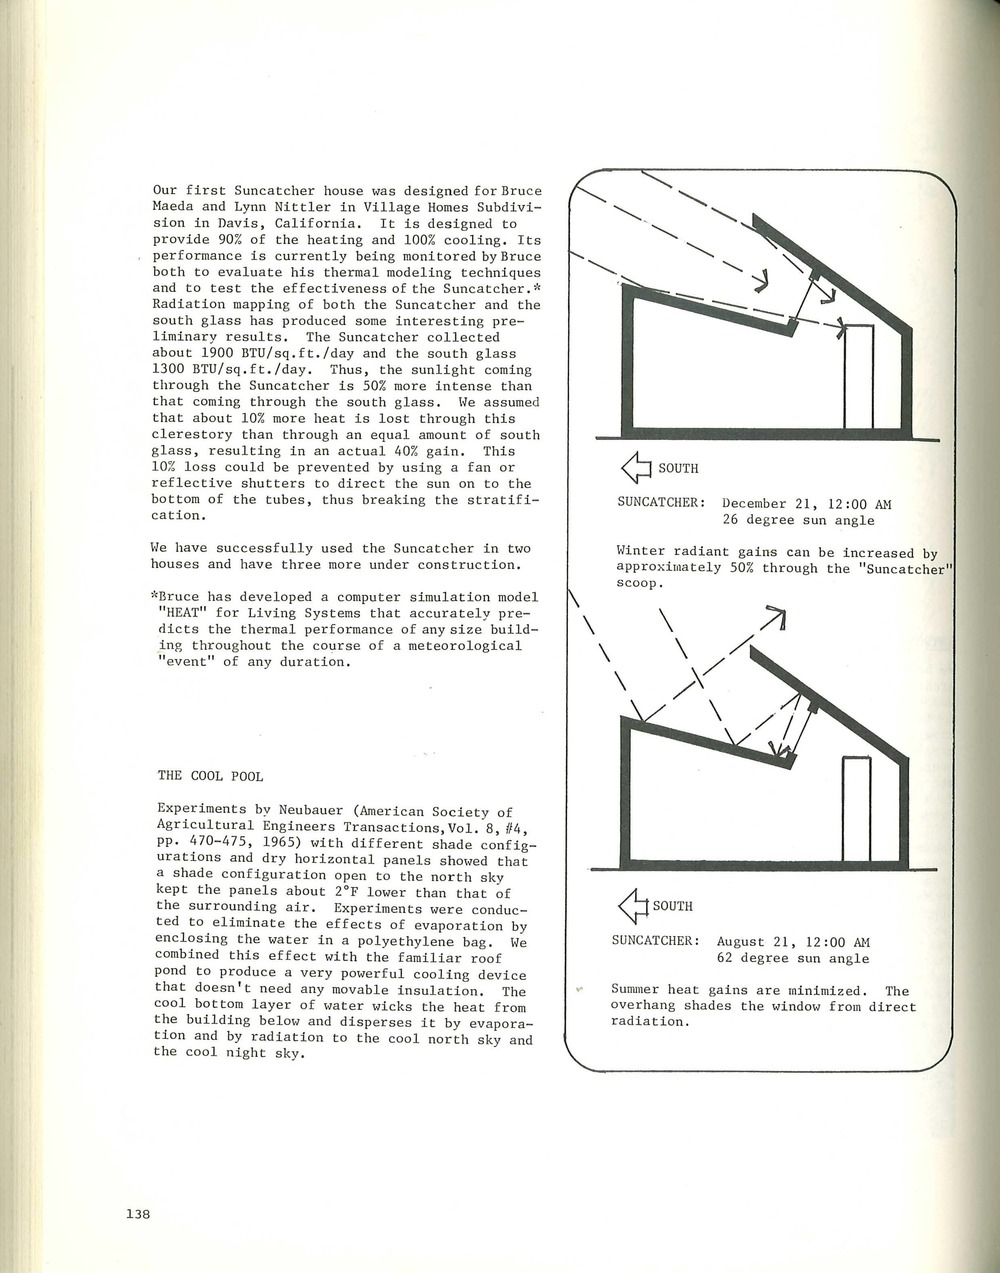 passive solar_proceedings of the 2nd national passive solar conference_1978_Page_4.jpg